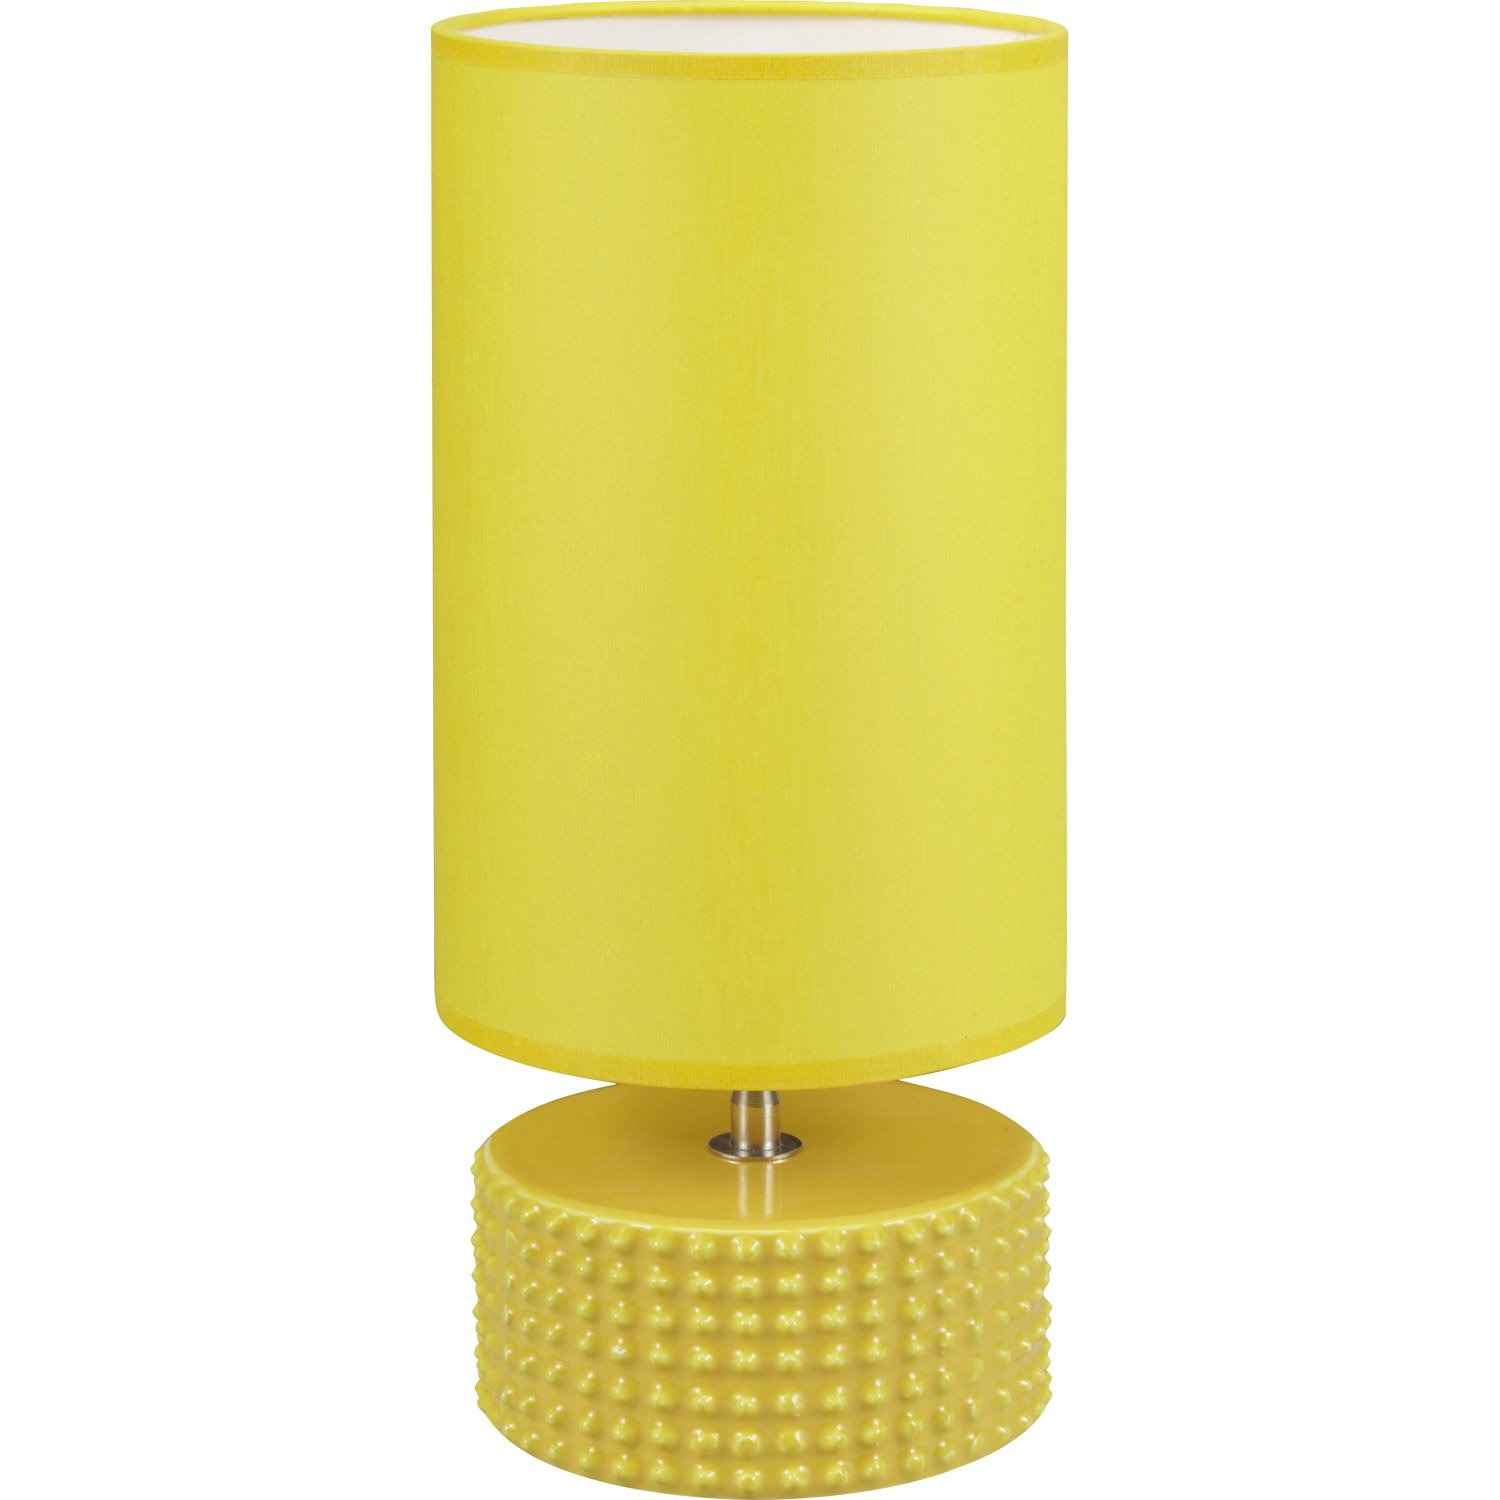 lampe e27 katus coton jaune 60 w leroy merlin. Black Bedroom Furniture Sets. Home Design Ideas